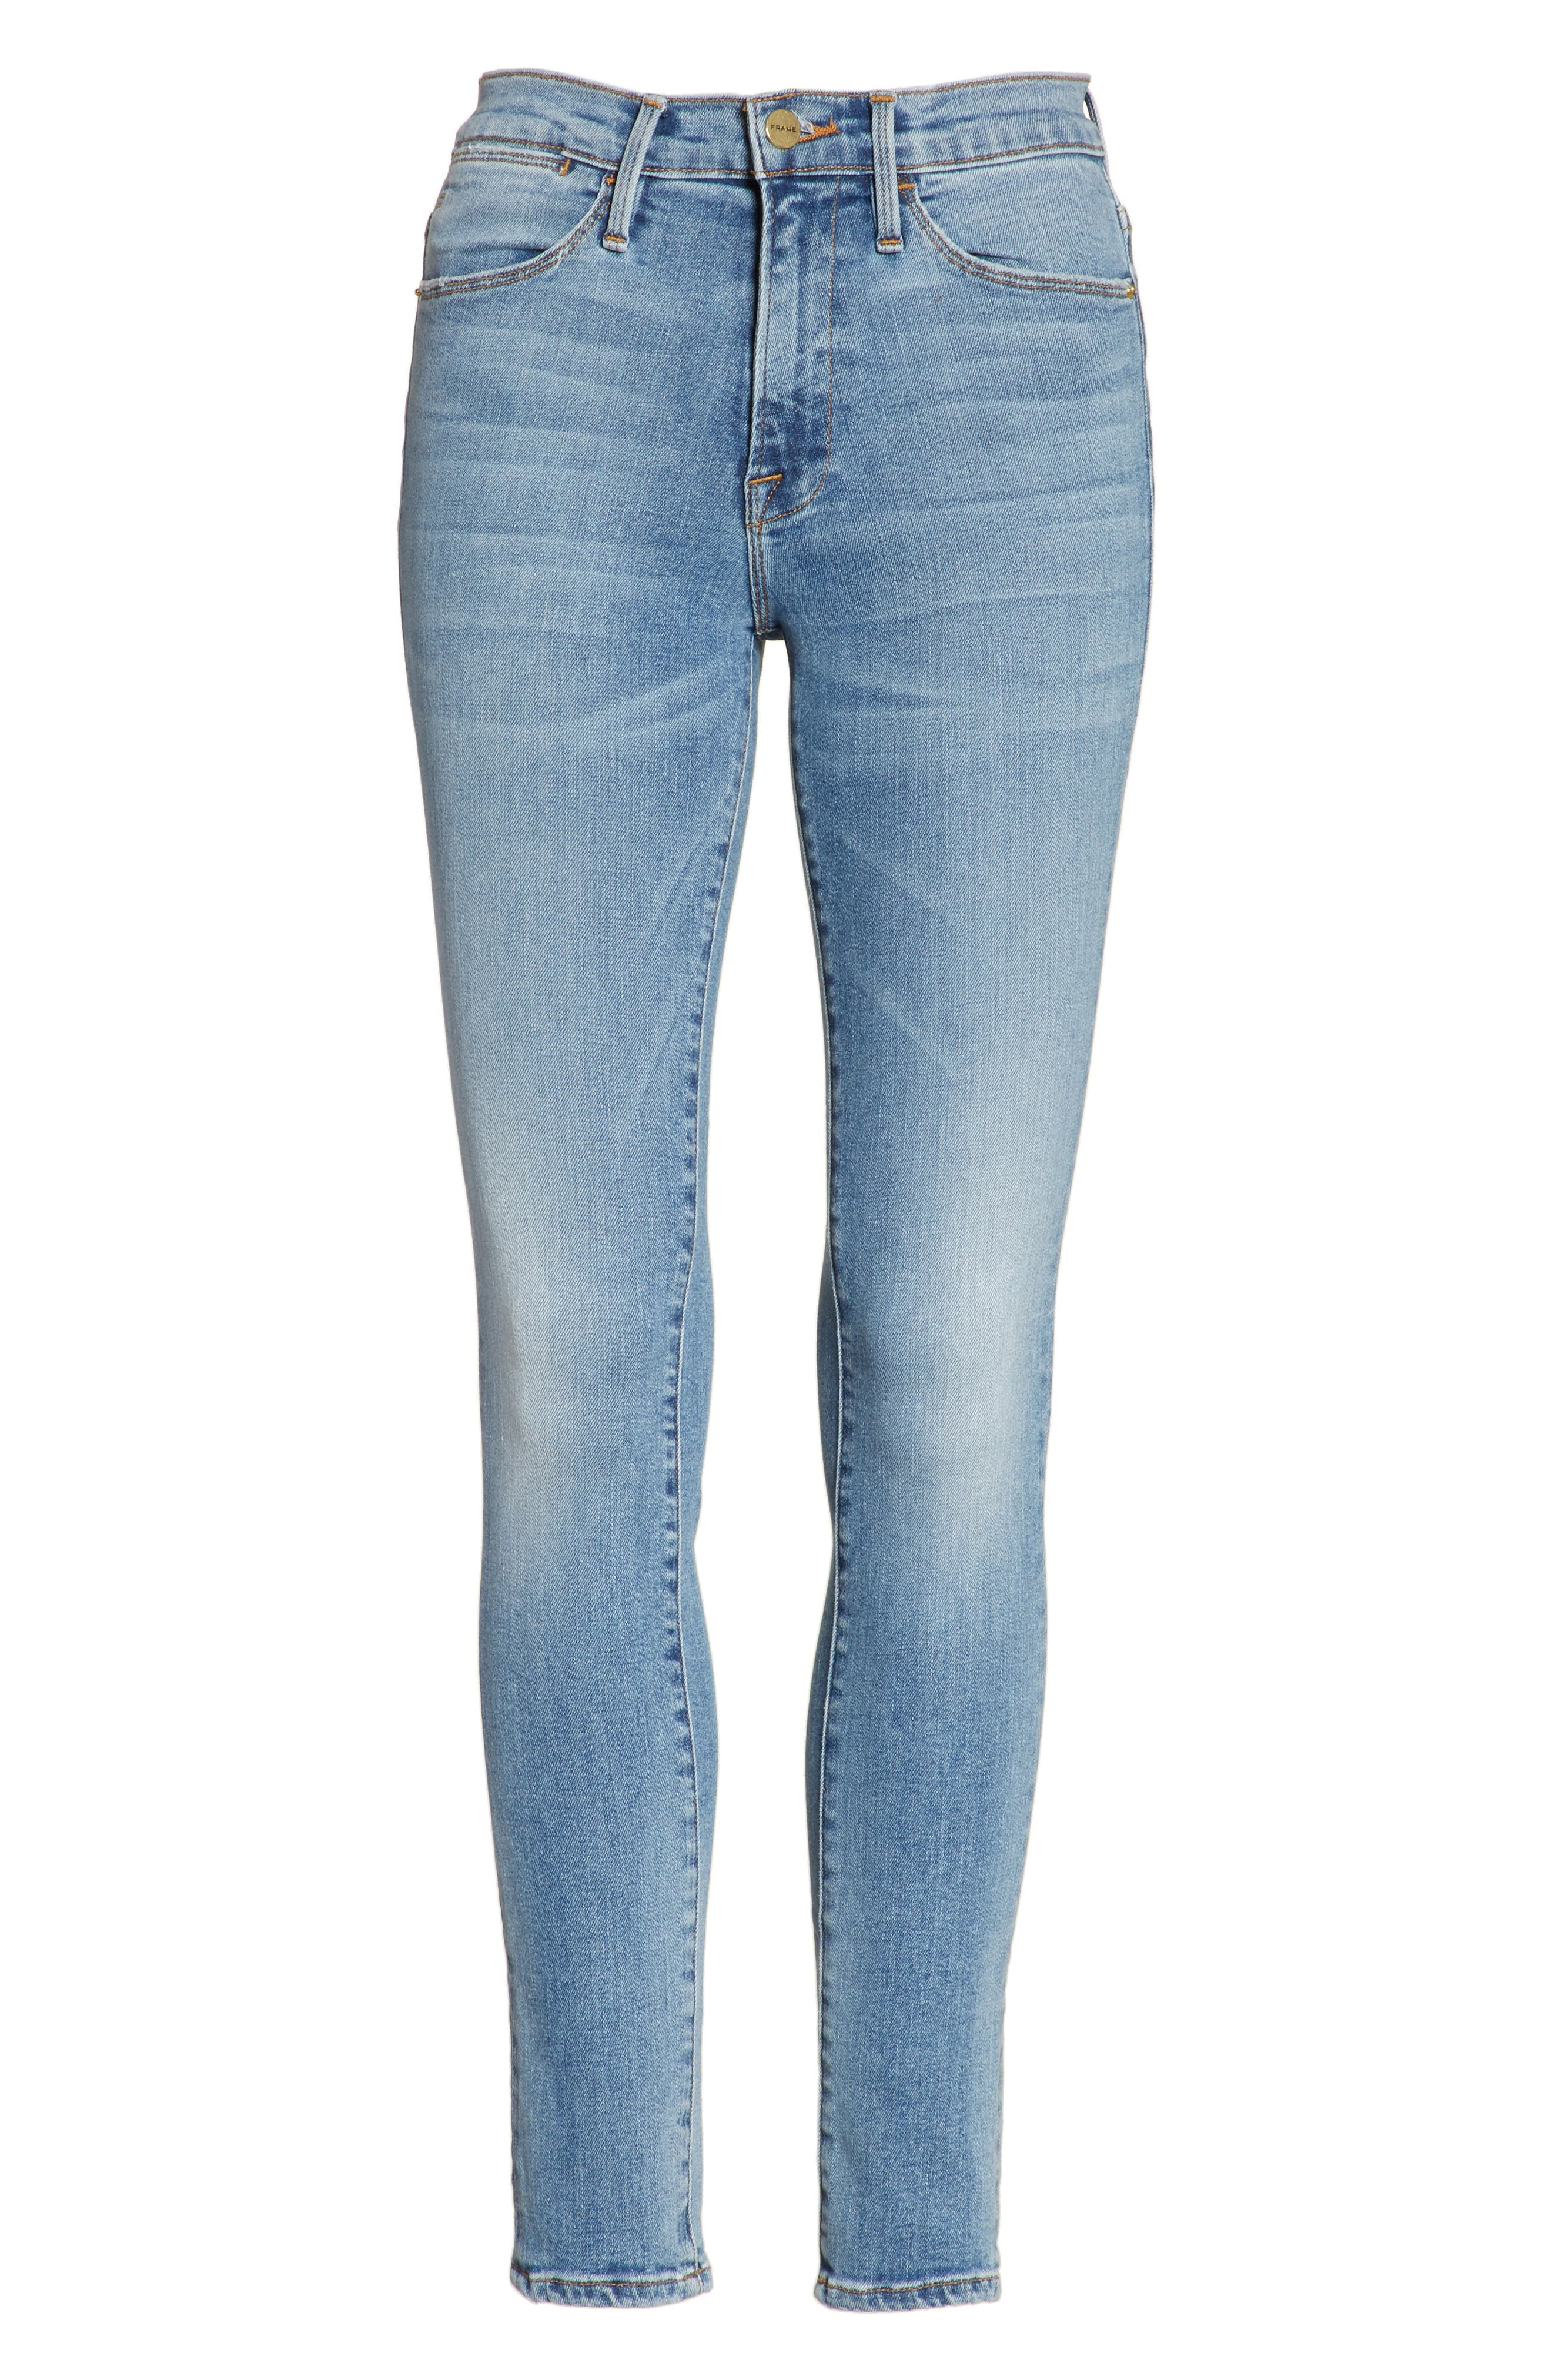 Le High Crop Skinny Jeans,                             Alternate thumbnail 6, color,                             Loehr